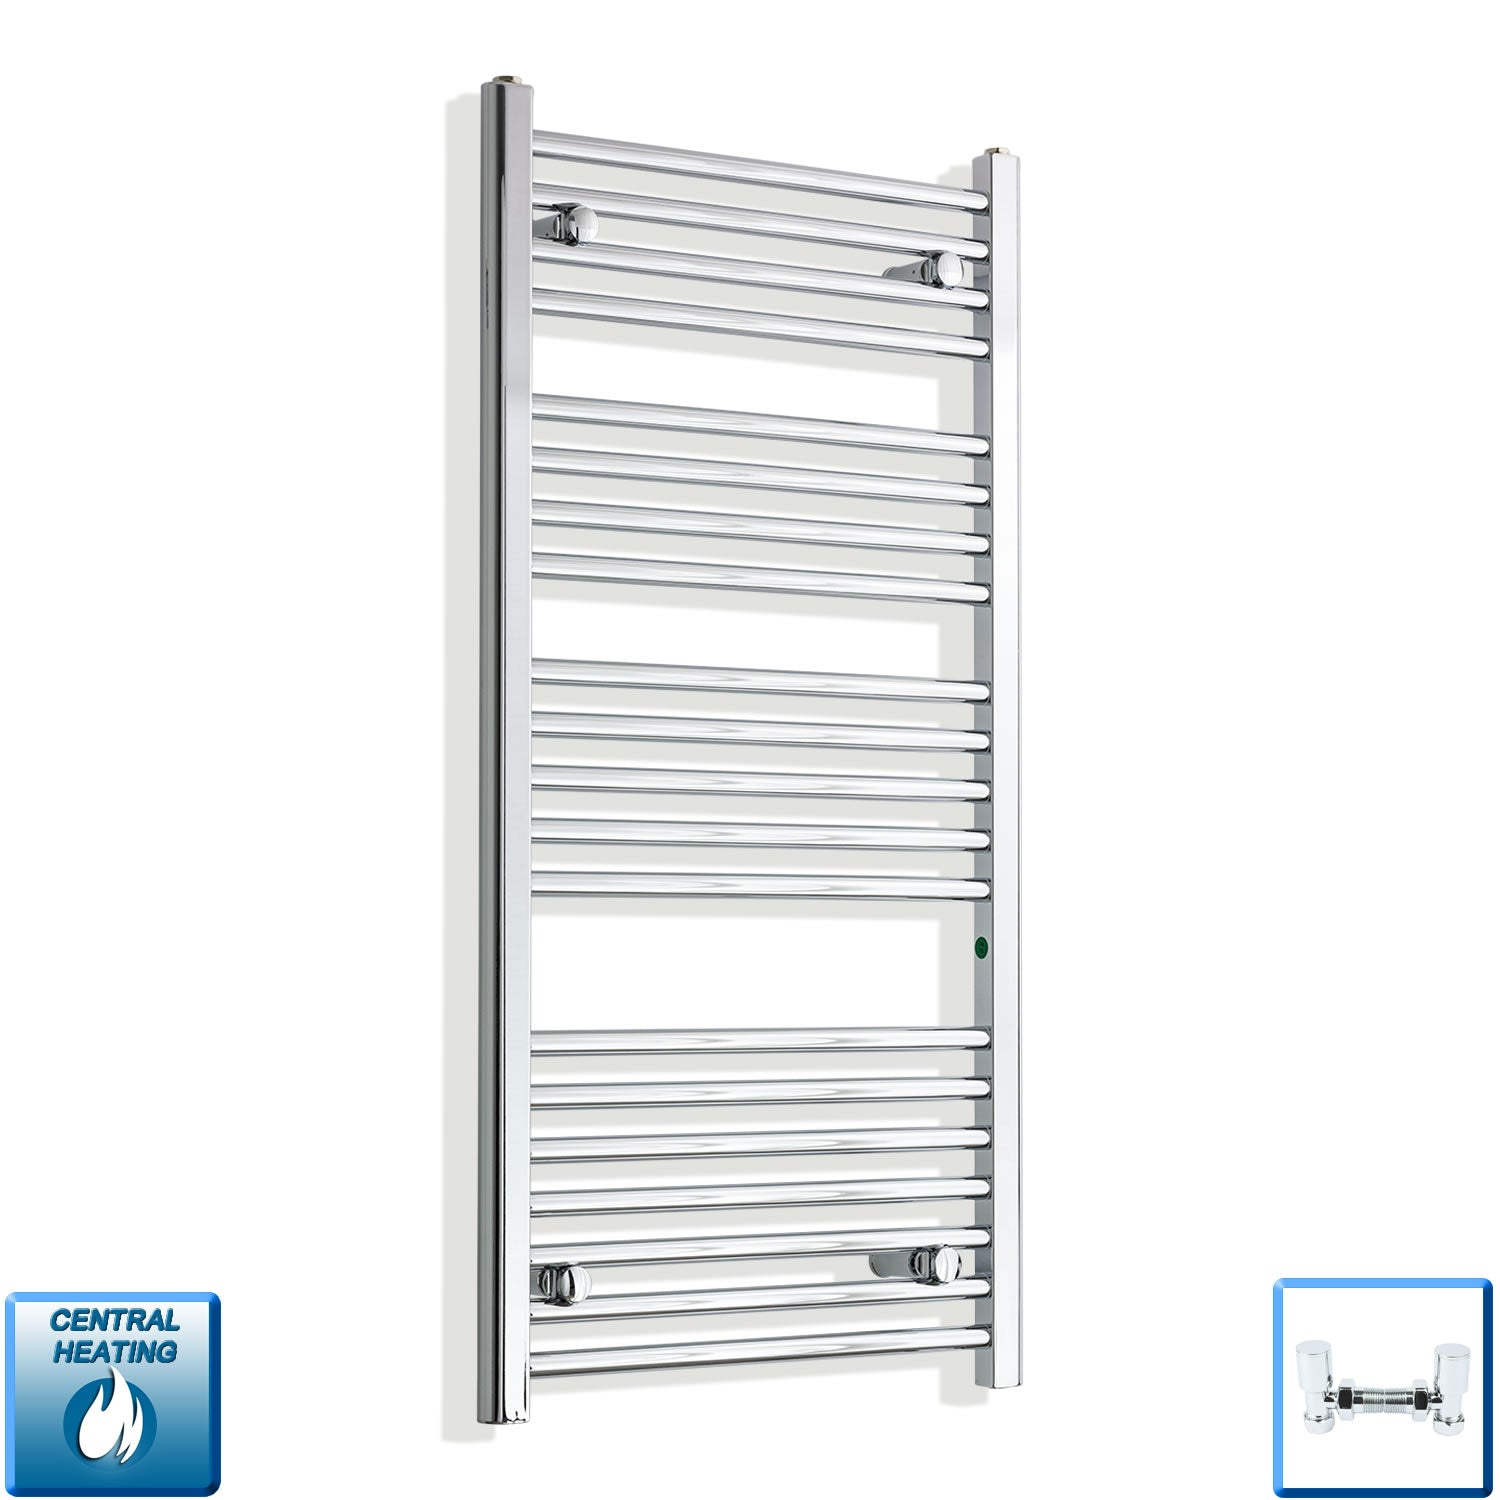 550mm Wide 1100mm High Chrome Towel Rail Radiator With Angled Valve